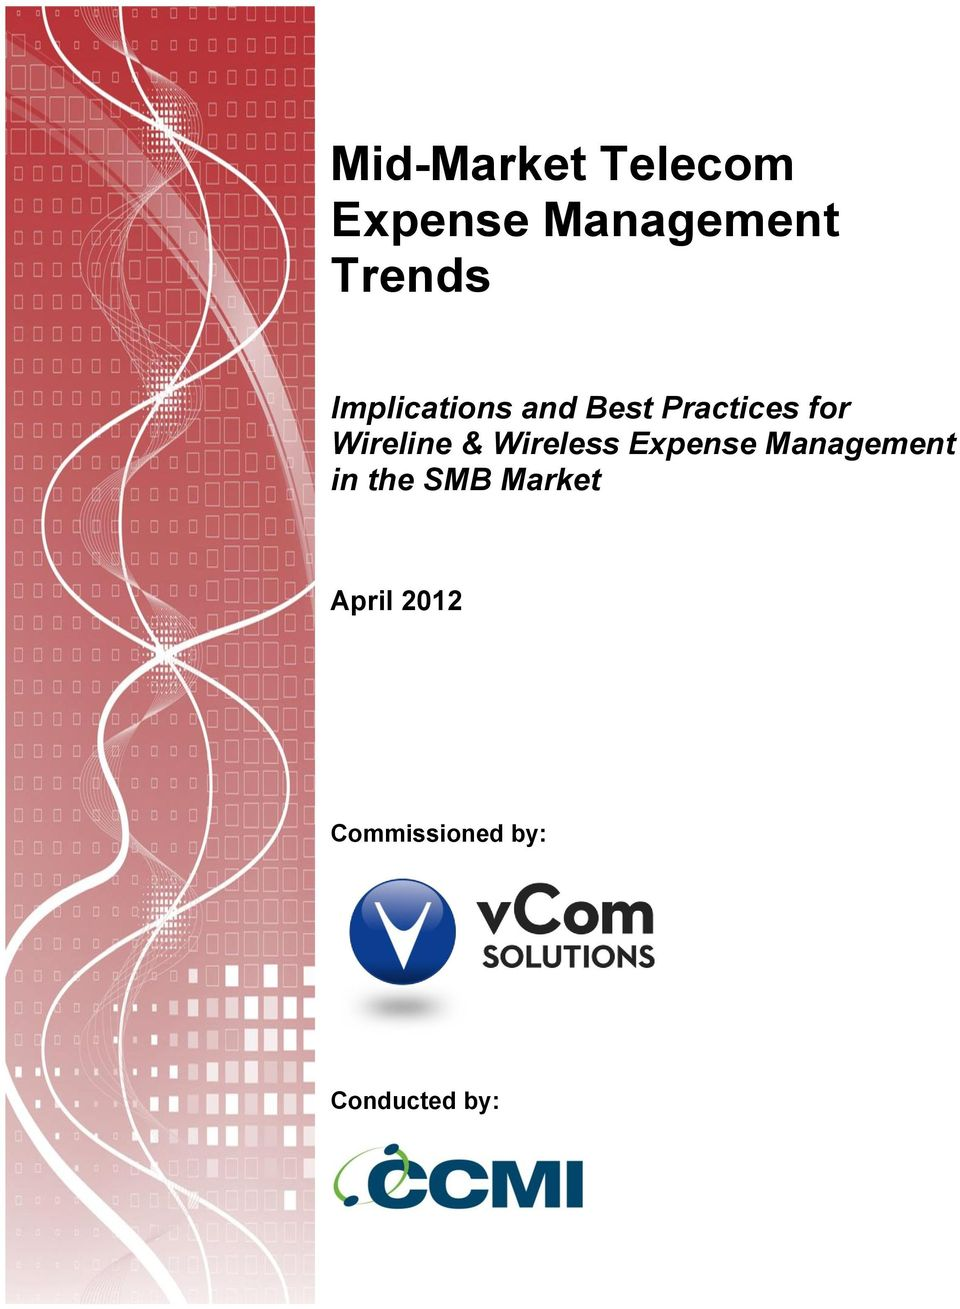 & Wireless Expense Management in the SMB